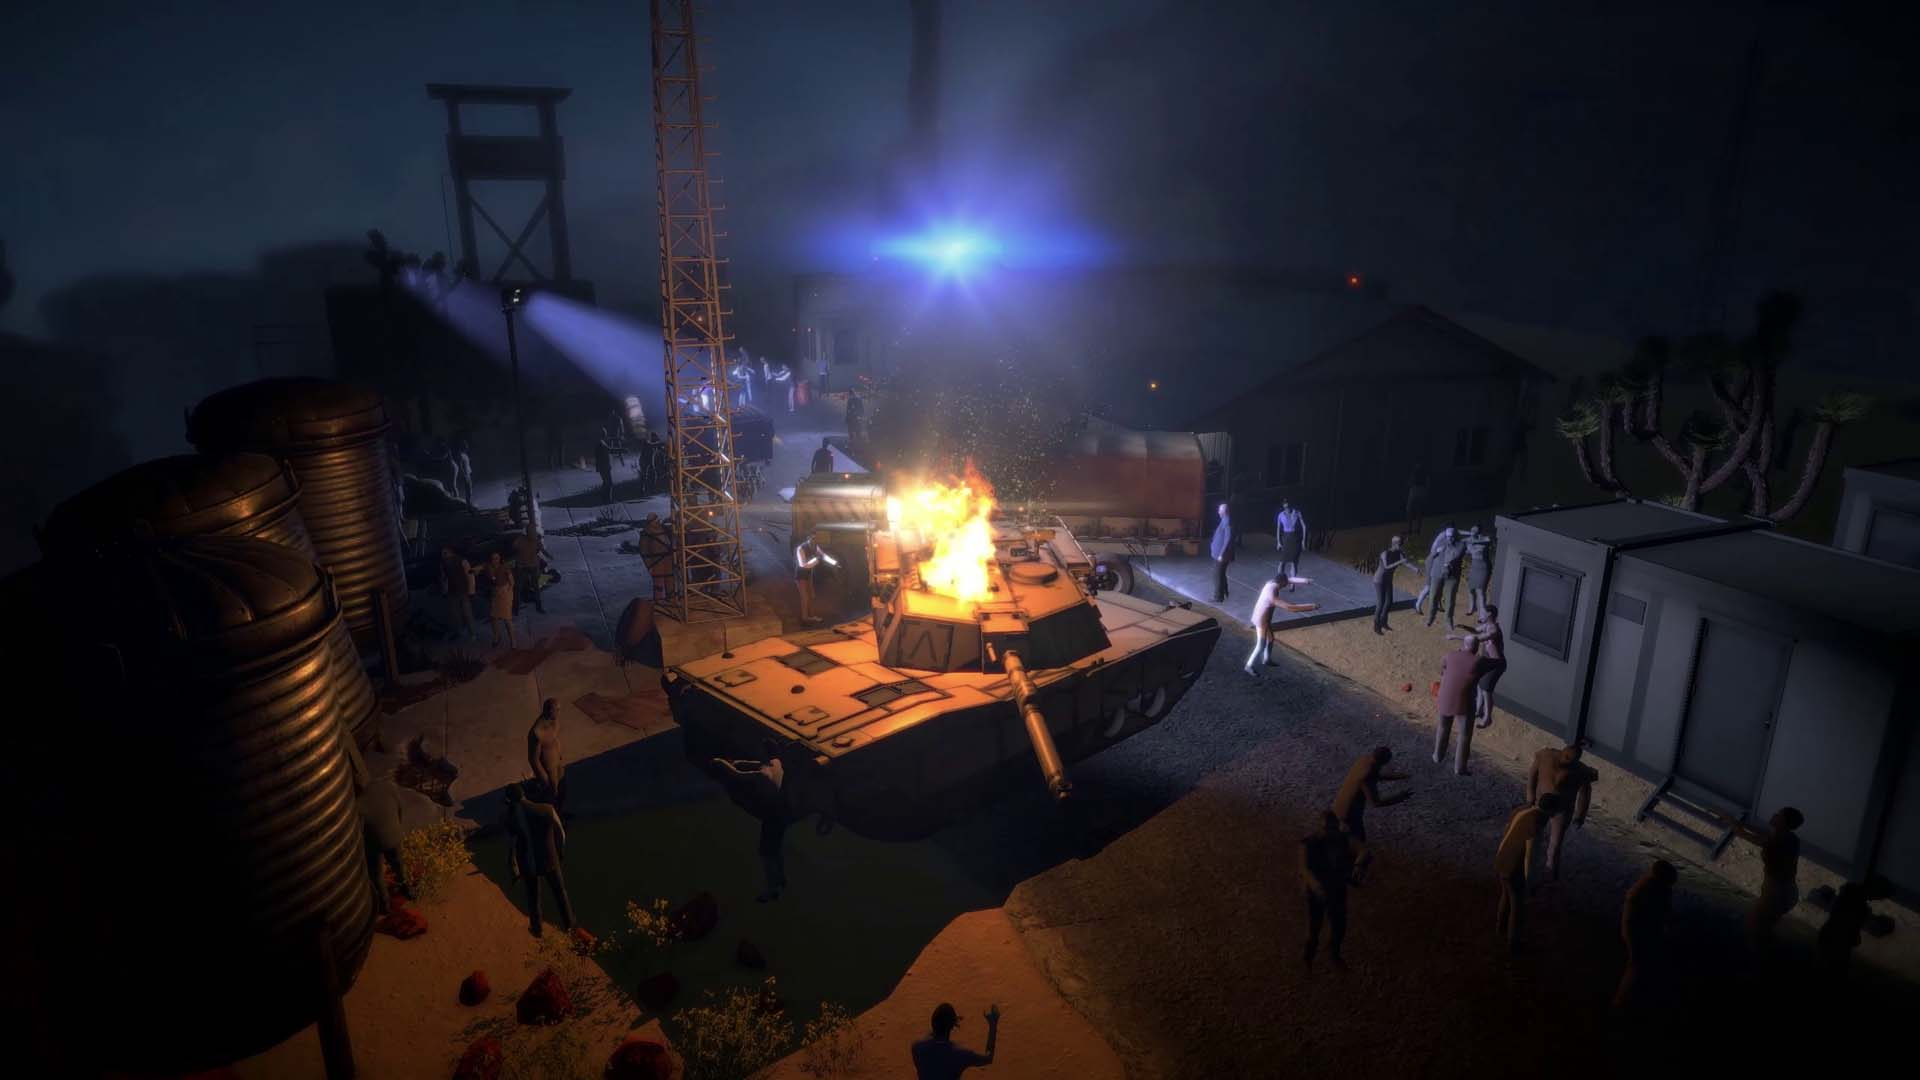 LBVR CHASSE AUX ZOMBIES